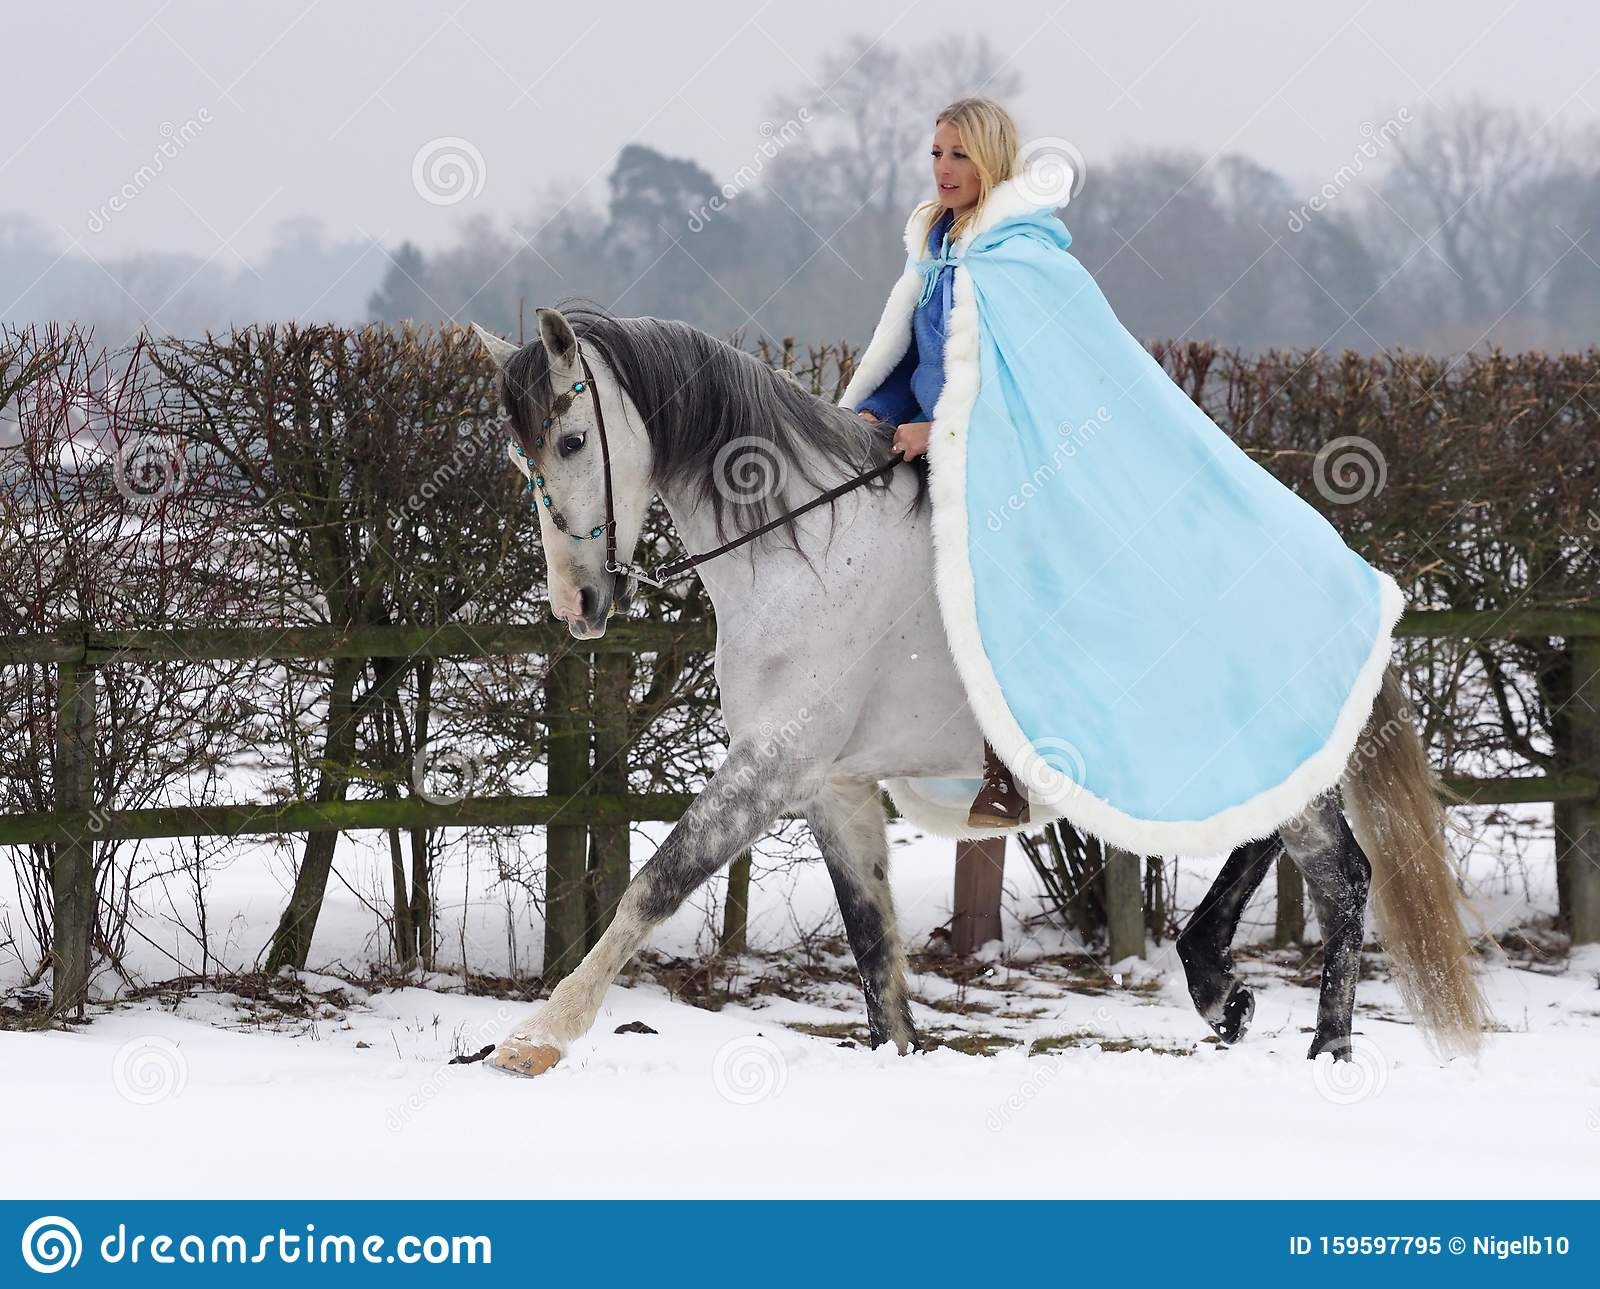 Woman Riding Horse In The Snow Stock Image Image Of Companion Leisure 159597795